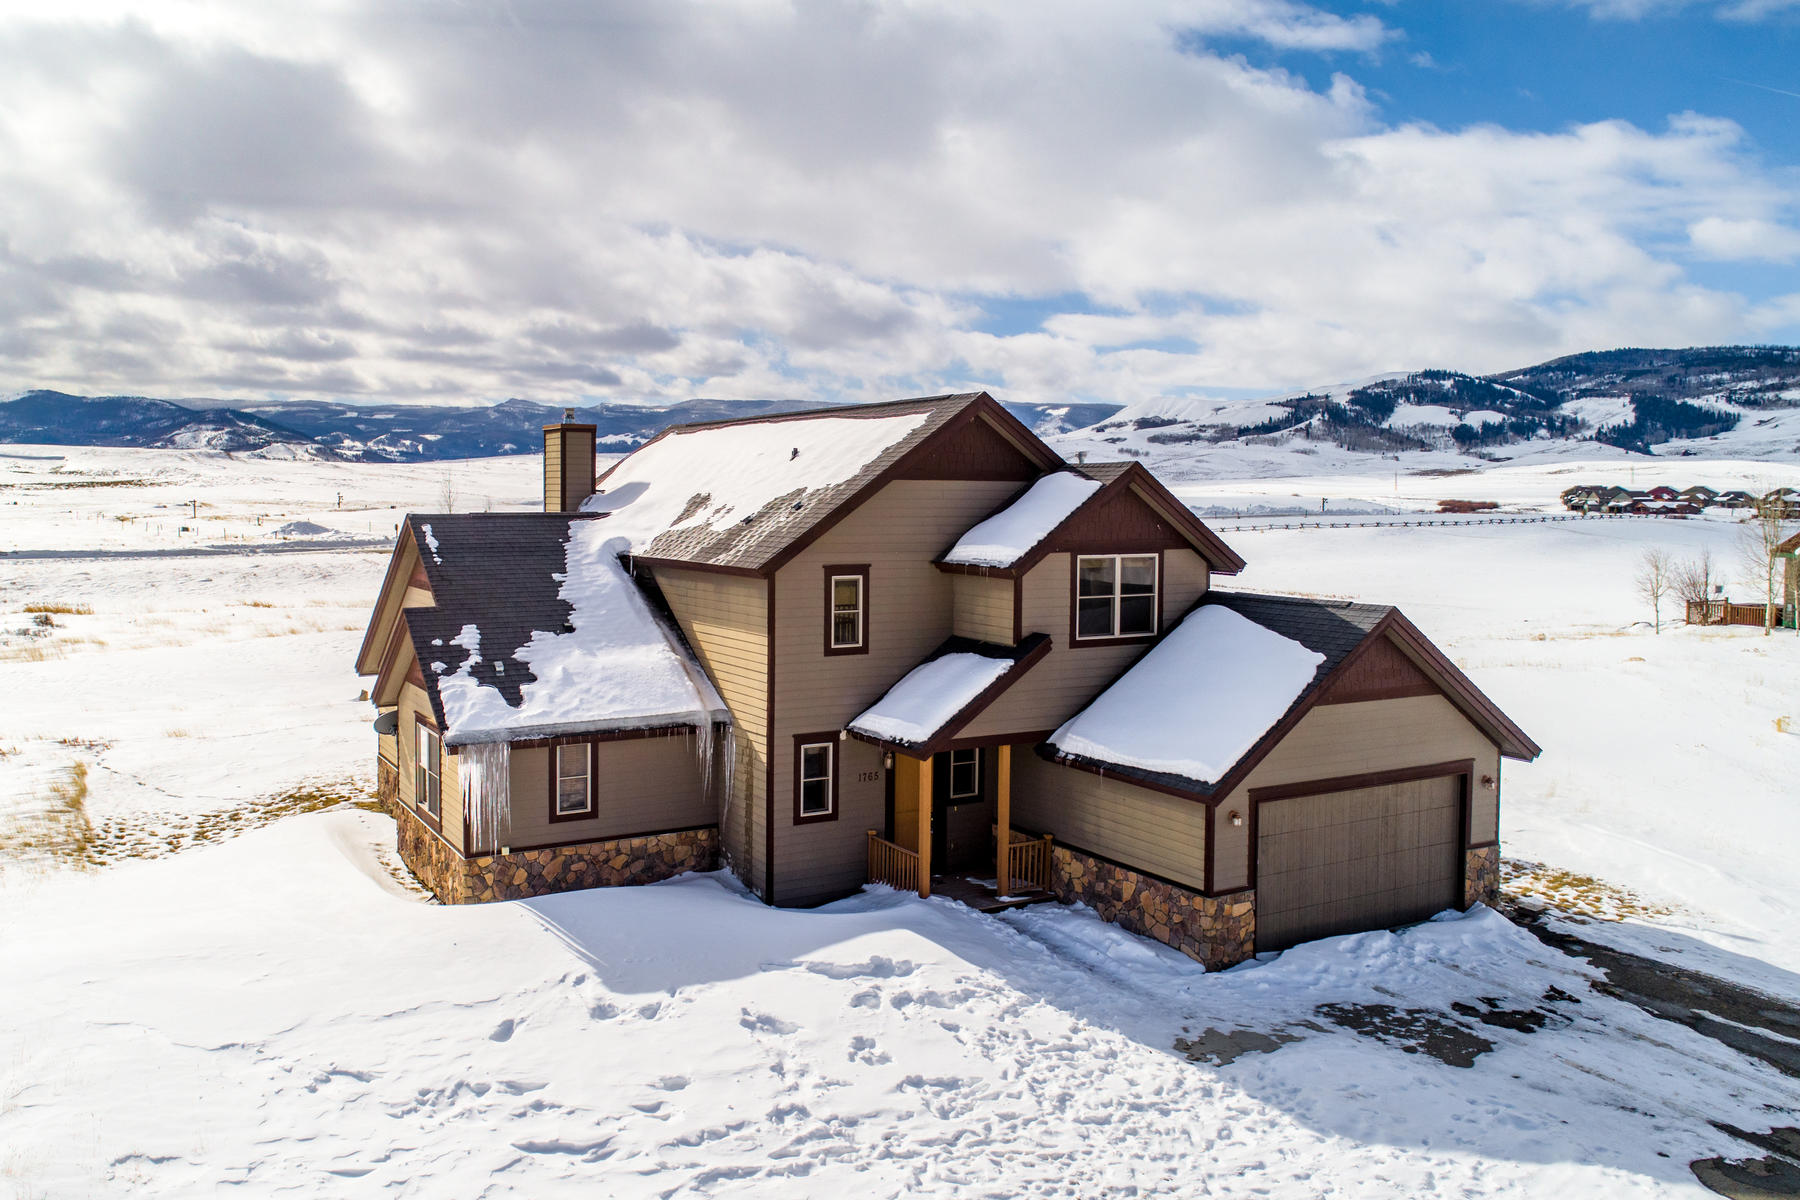 Single Family Homes for Sale at Nestled in the Middle Park region with breathtaking views 1765 Mountain Sky Lane Granby, Colorado 80446 United States